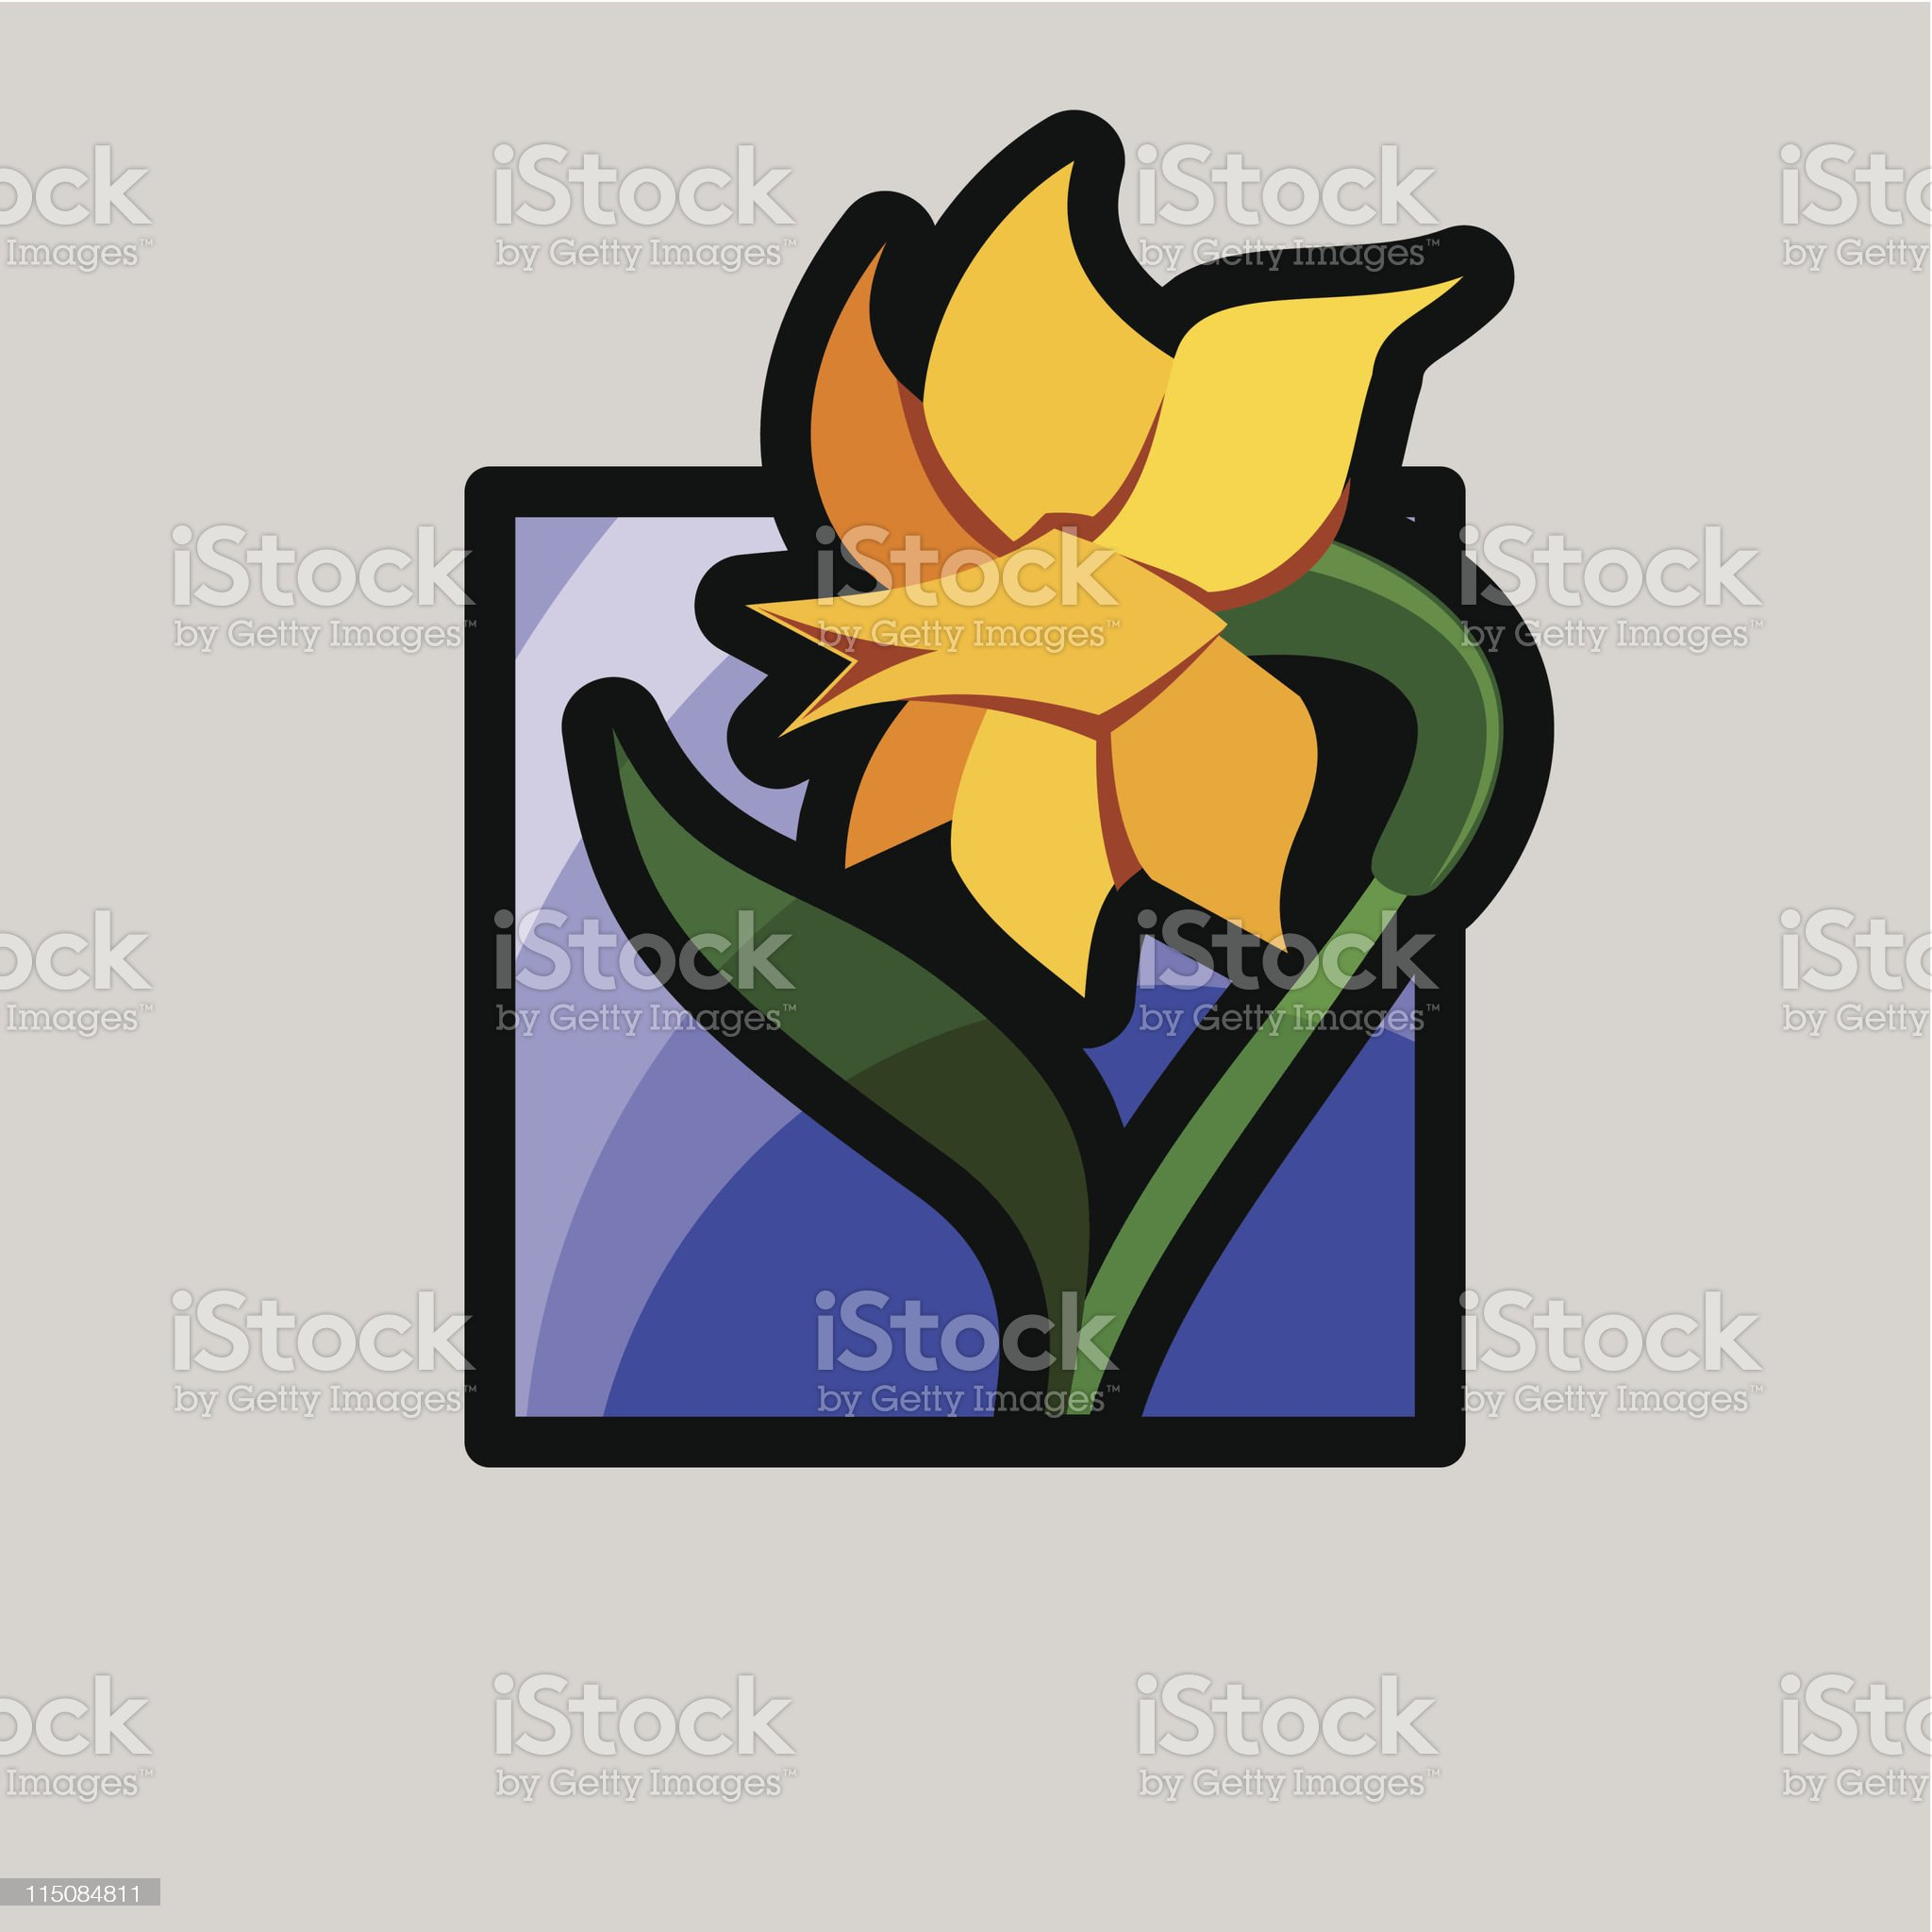 icons for spring - daffodil royalty-free stock vector art